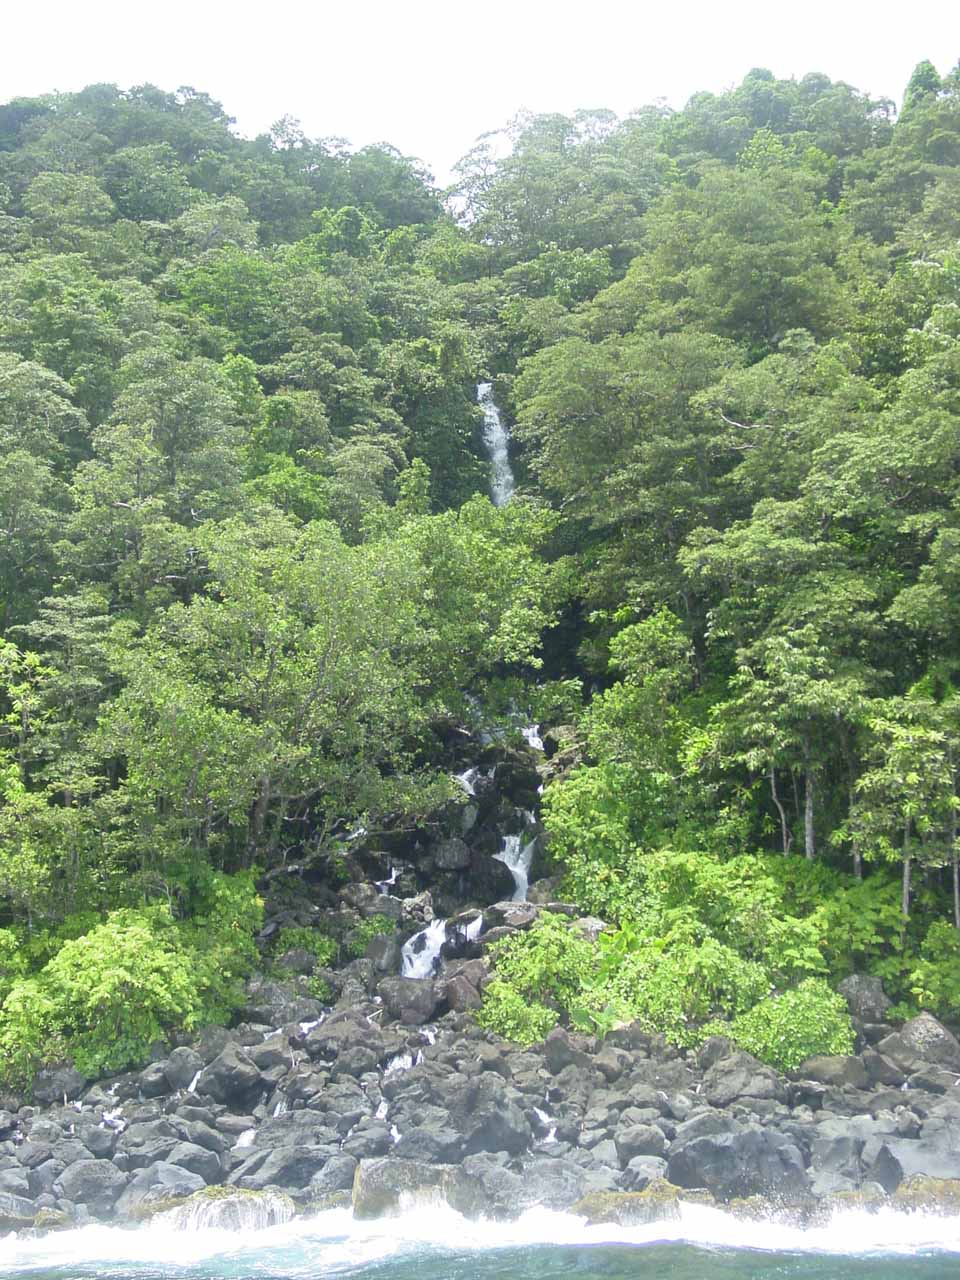 A taller waterfall hidden behind the dense foliage